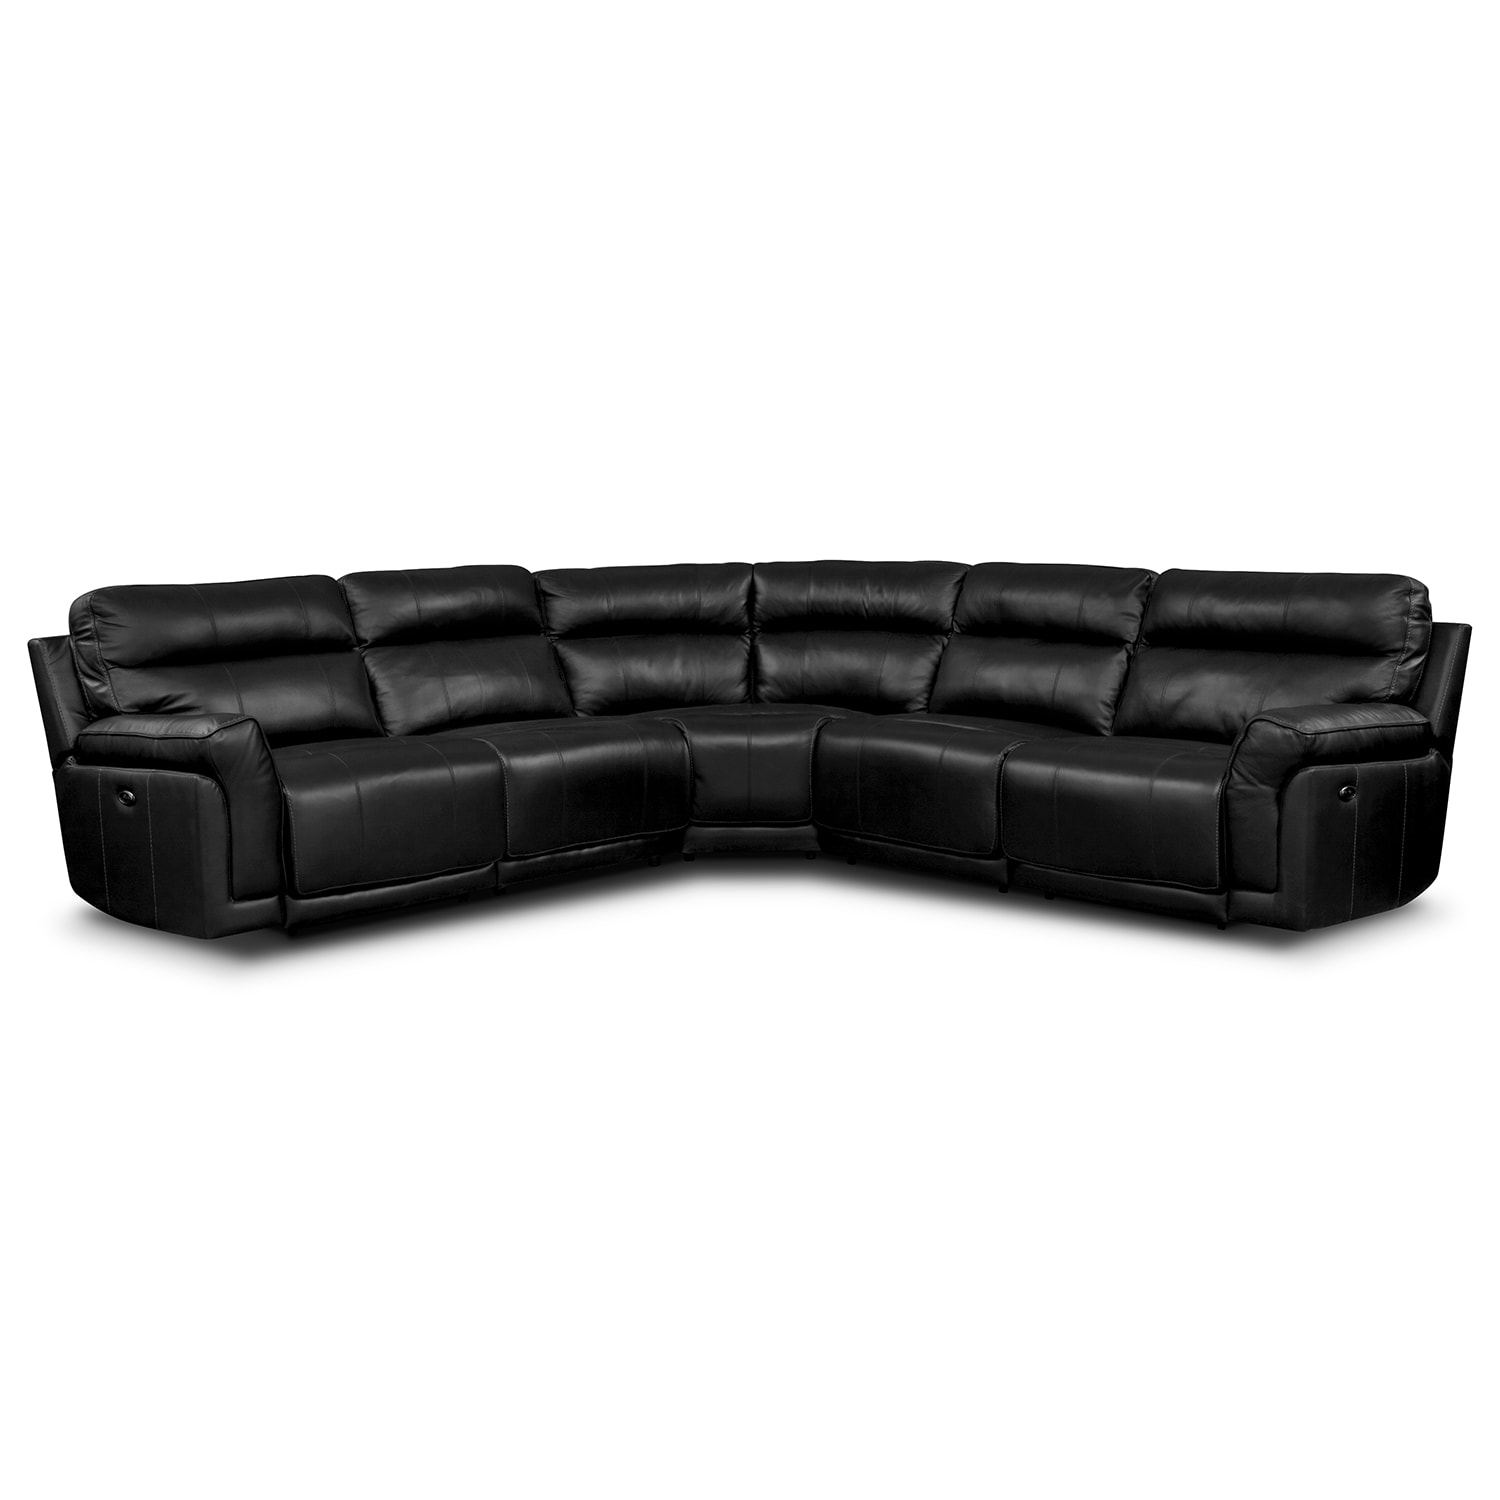 Living Room Furniture - Antonio 5 Pc. Power Reclining Sectional